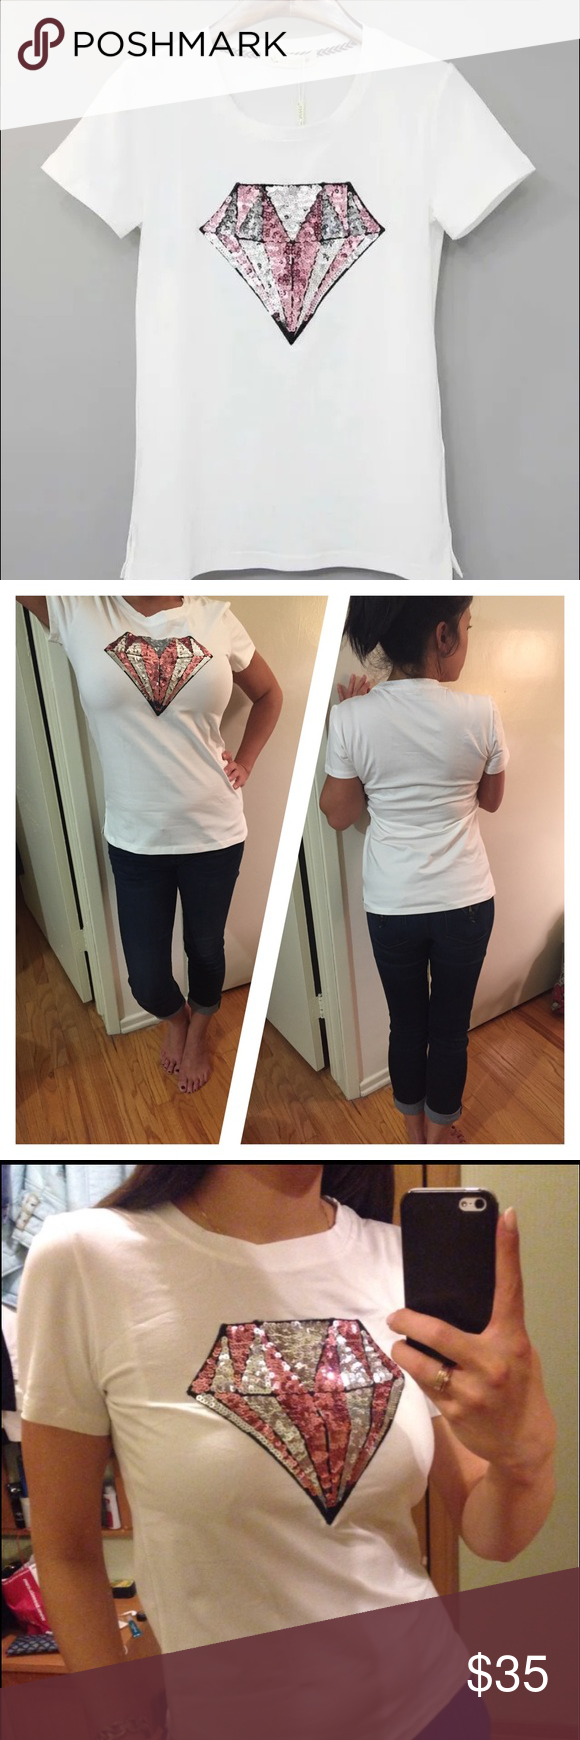 """Shine bright! NWT sequin tee shirt. Quality, NWT sequin tee shirt. Gorgeous! Fits like a juniors size small/medium, depending on how you like the fit. My model in pic #2 is wearing the shirt for sell,  is size 4, with DD bust, 5'1"""" tall. Boutique brand, listed under Zara for exposure. Zara Tops Tees - Short Sleeve"""